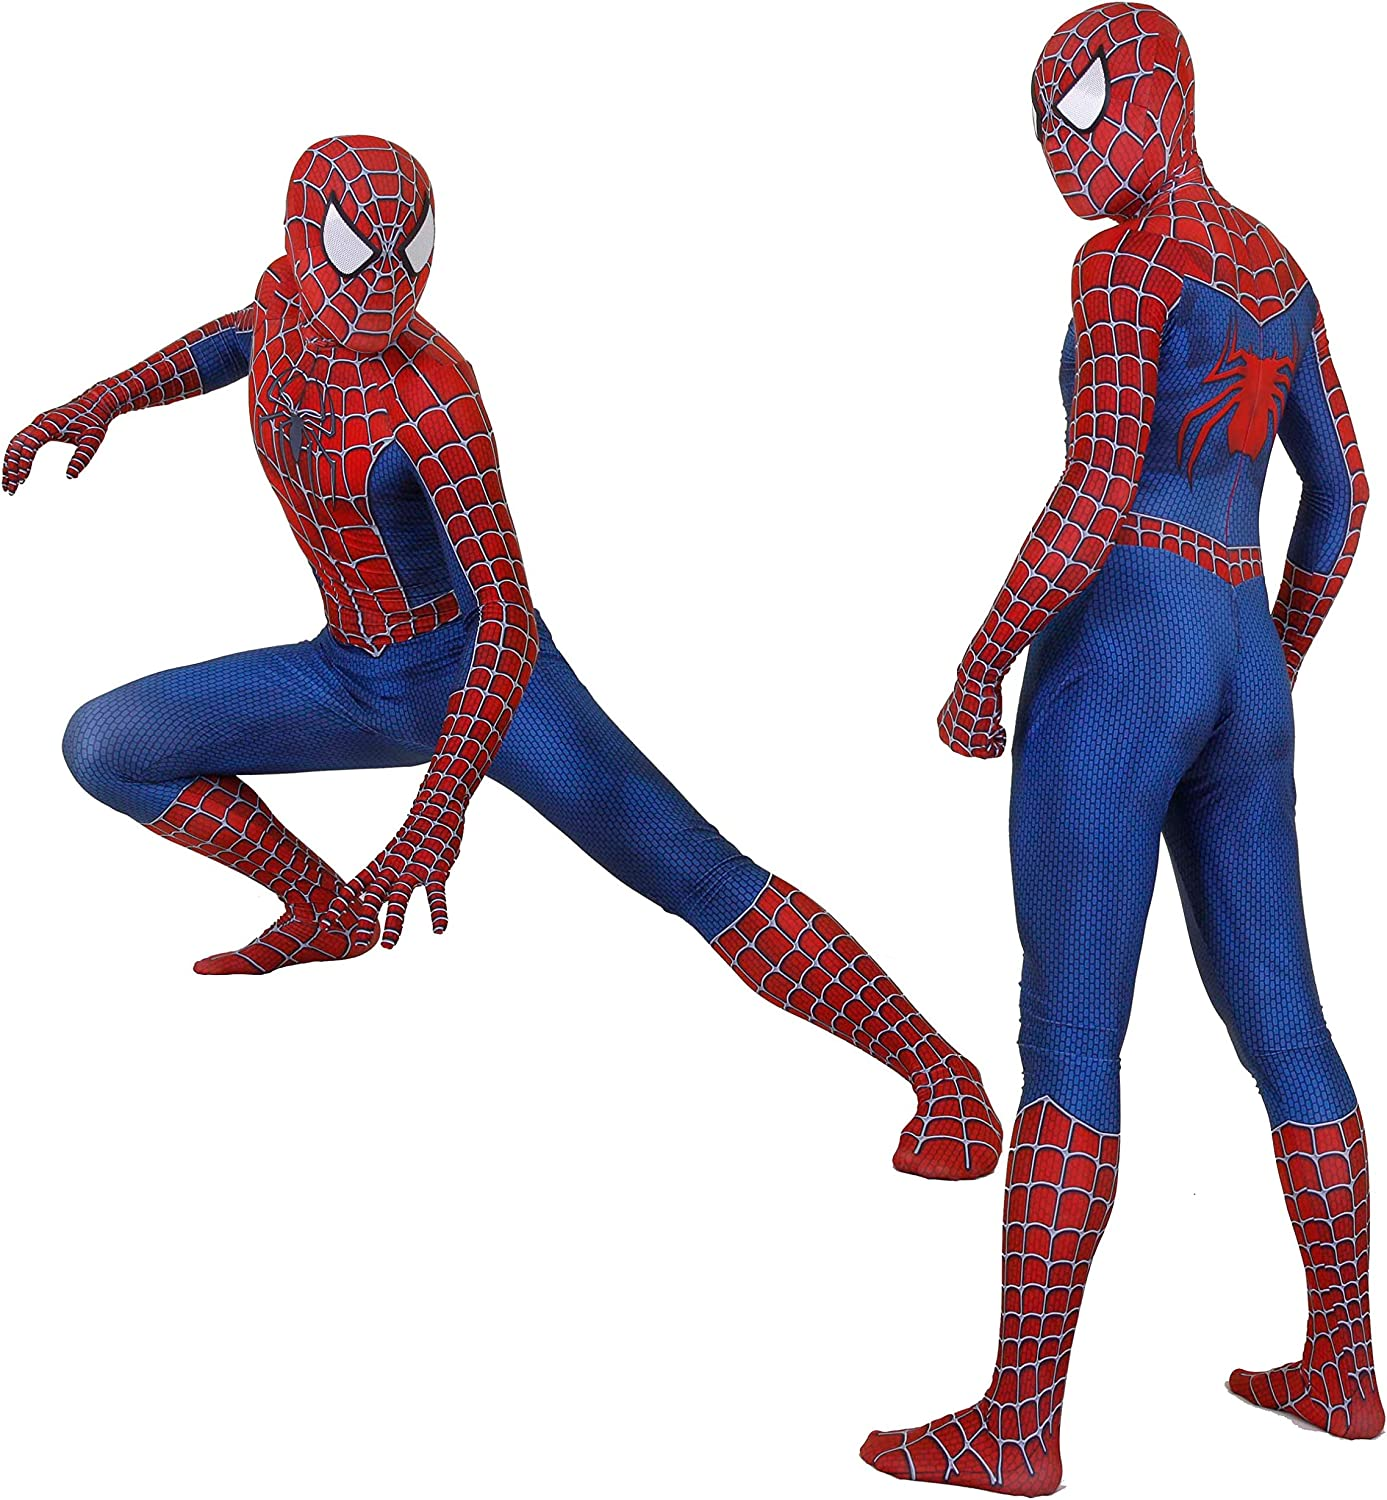 CatHighness Unisex Lycra Spandex Zentai Halloween Cosplay Costumes Adult/Kids 3D Style: Clothing